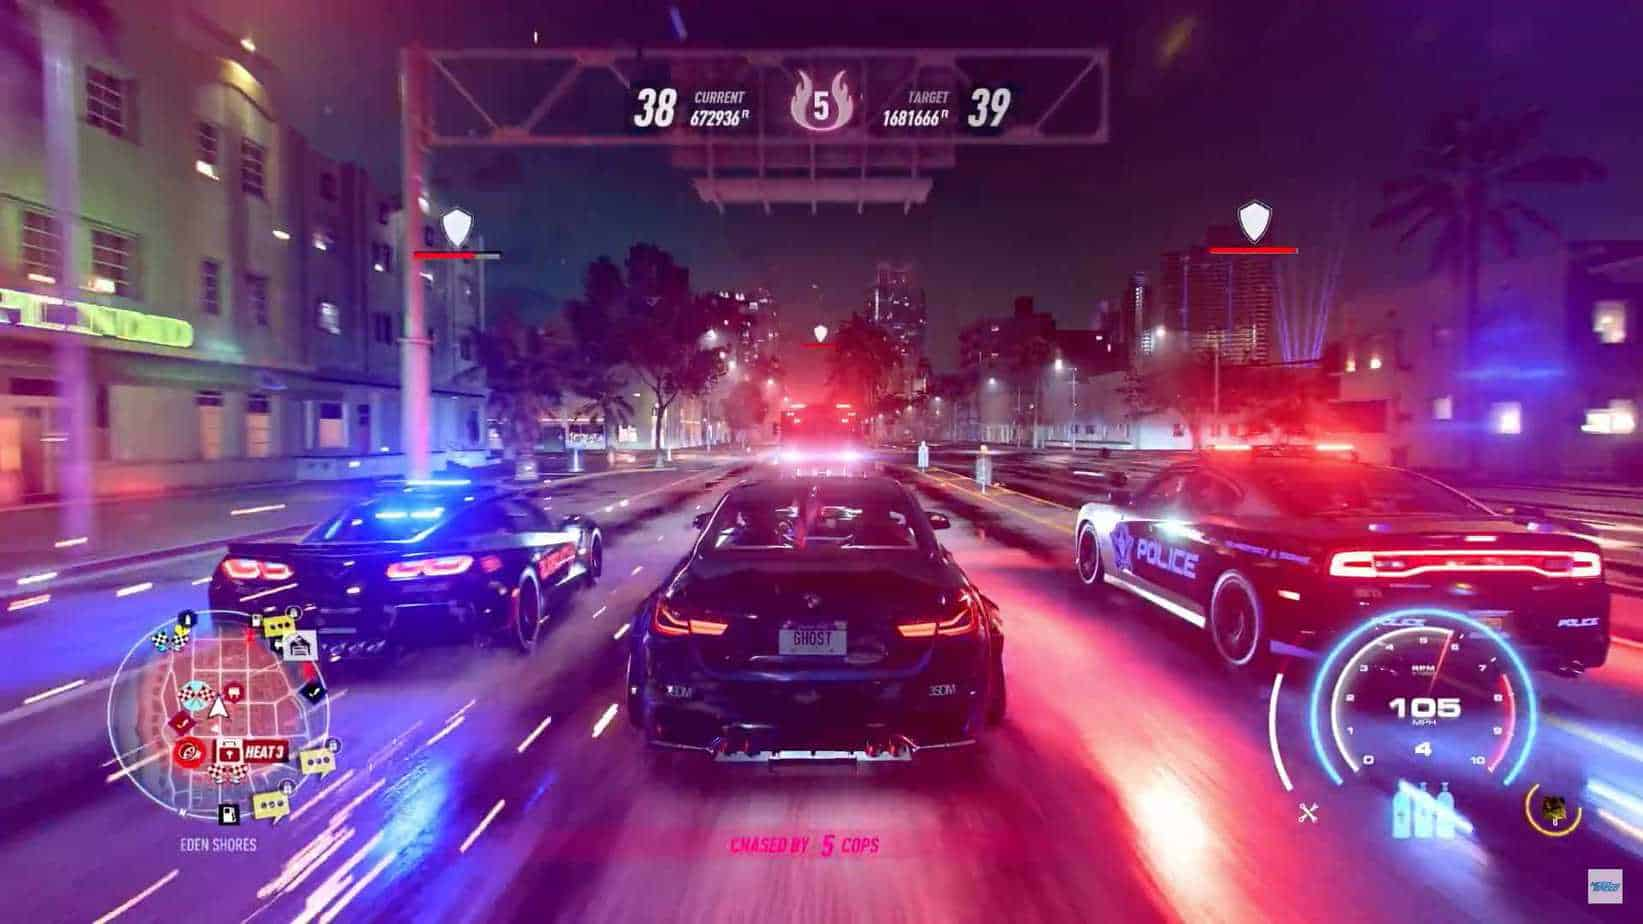 Anmeldelse: Need for Speed Heat